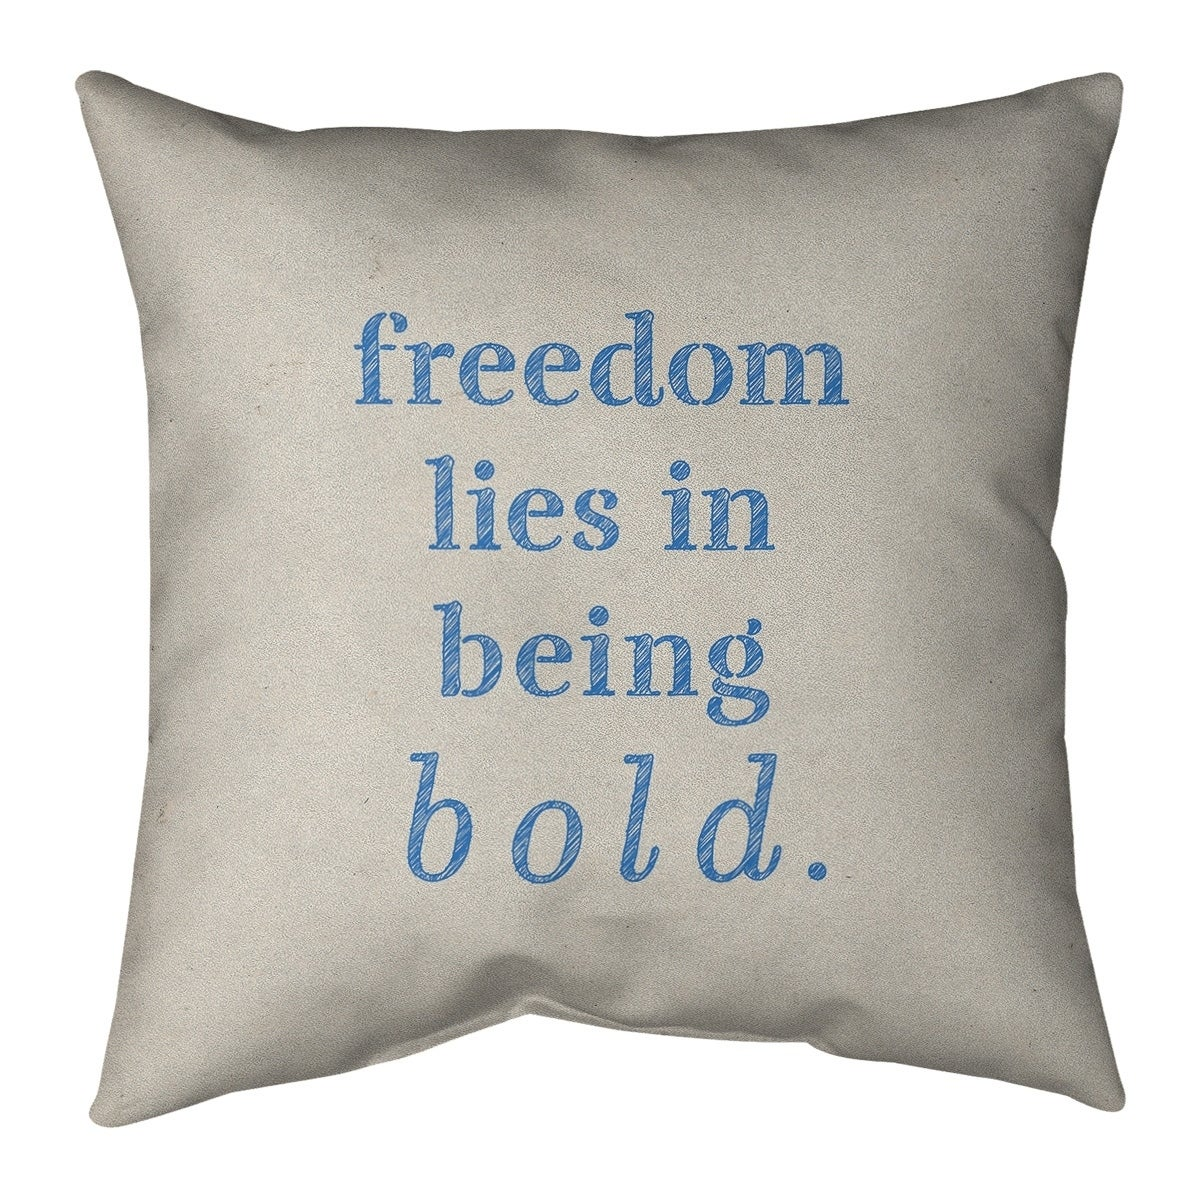 Quotes Handwritten Be Bold Inspirational Quote Pillow Cotton Twill Overstock 30309019